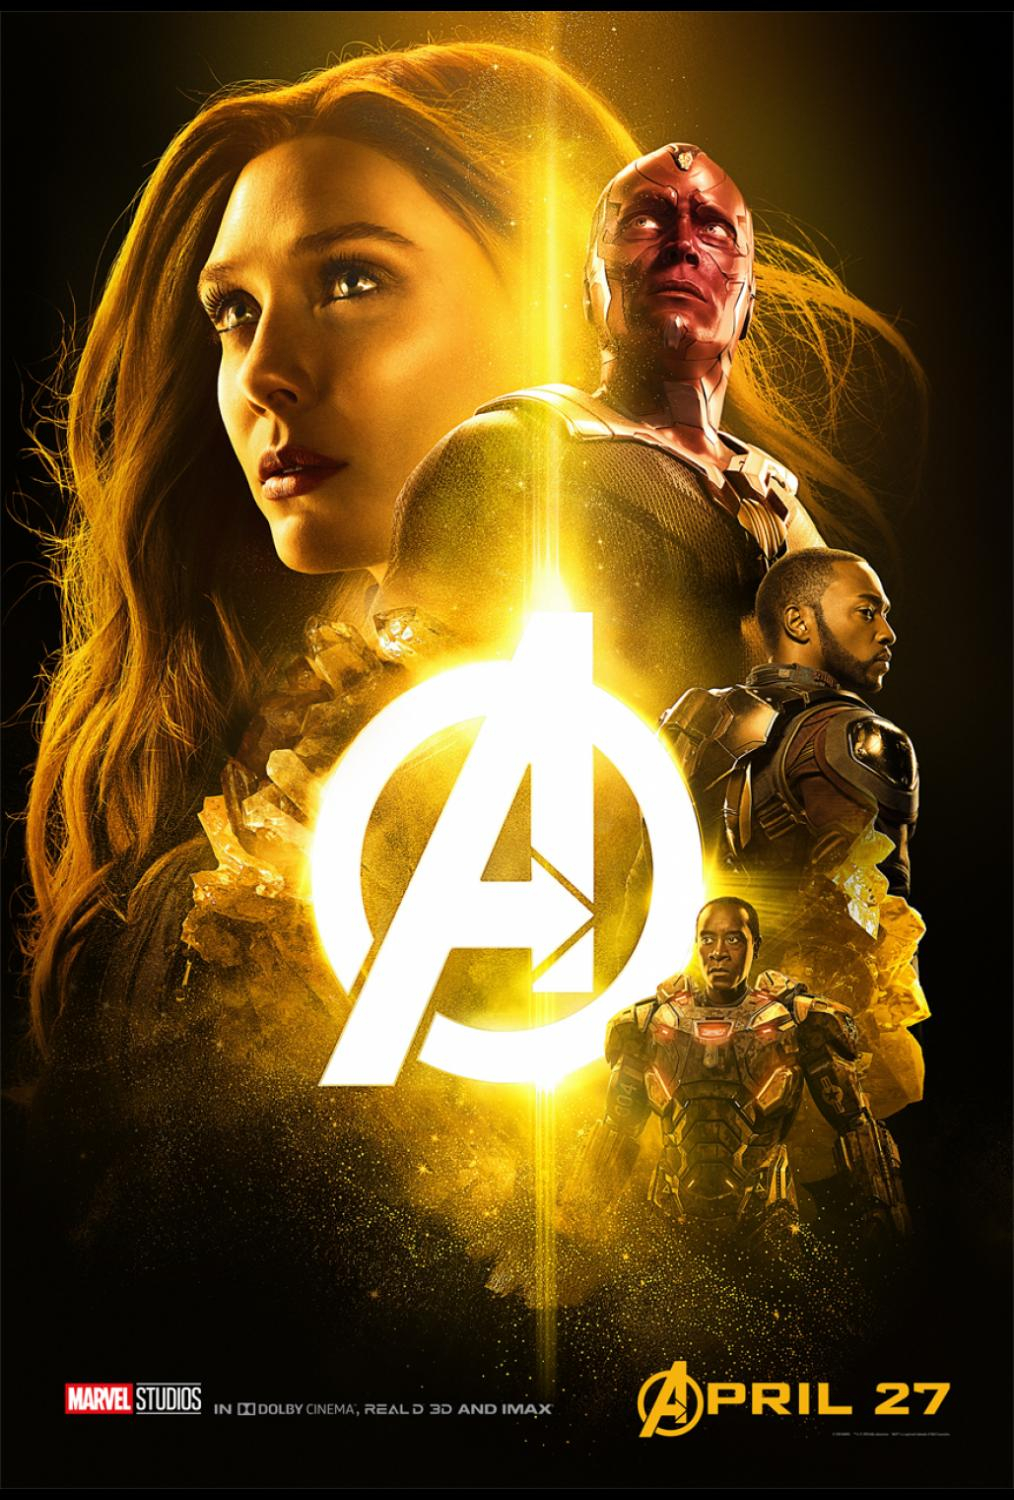 Infinity War Posters, Infinity War, Avengers, Marvel, Marvel Cinematic Universe